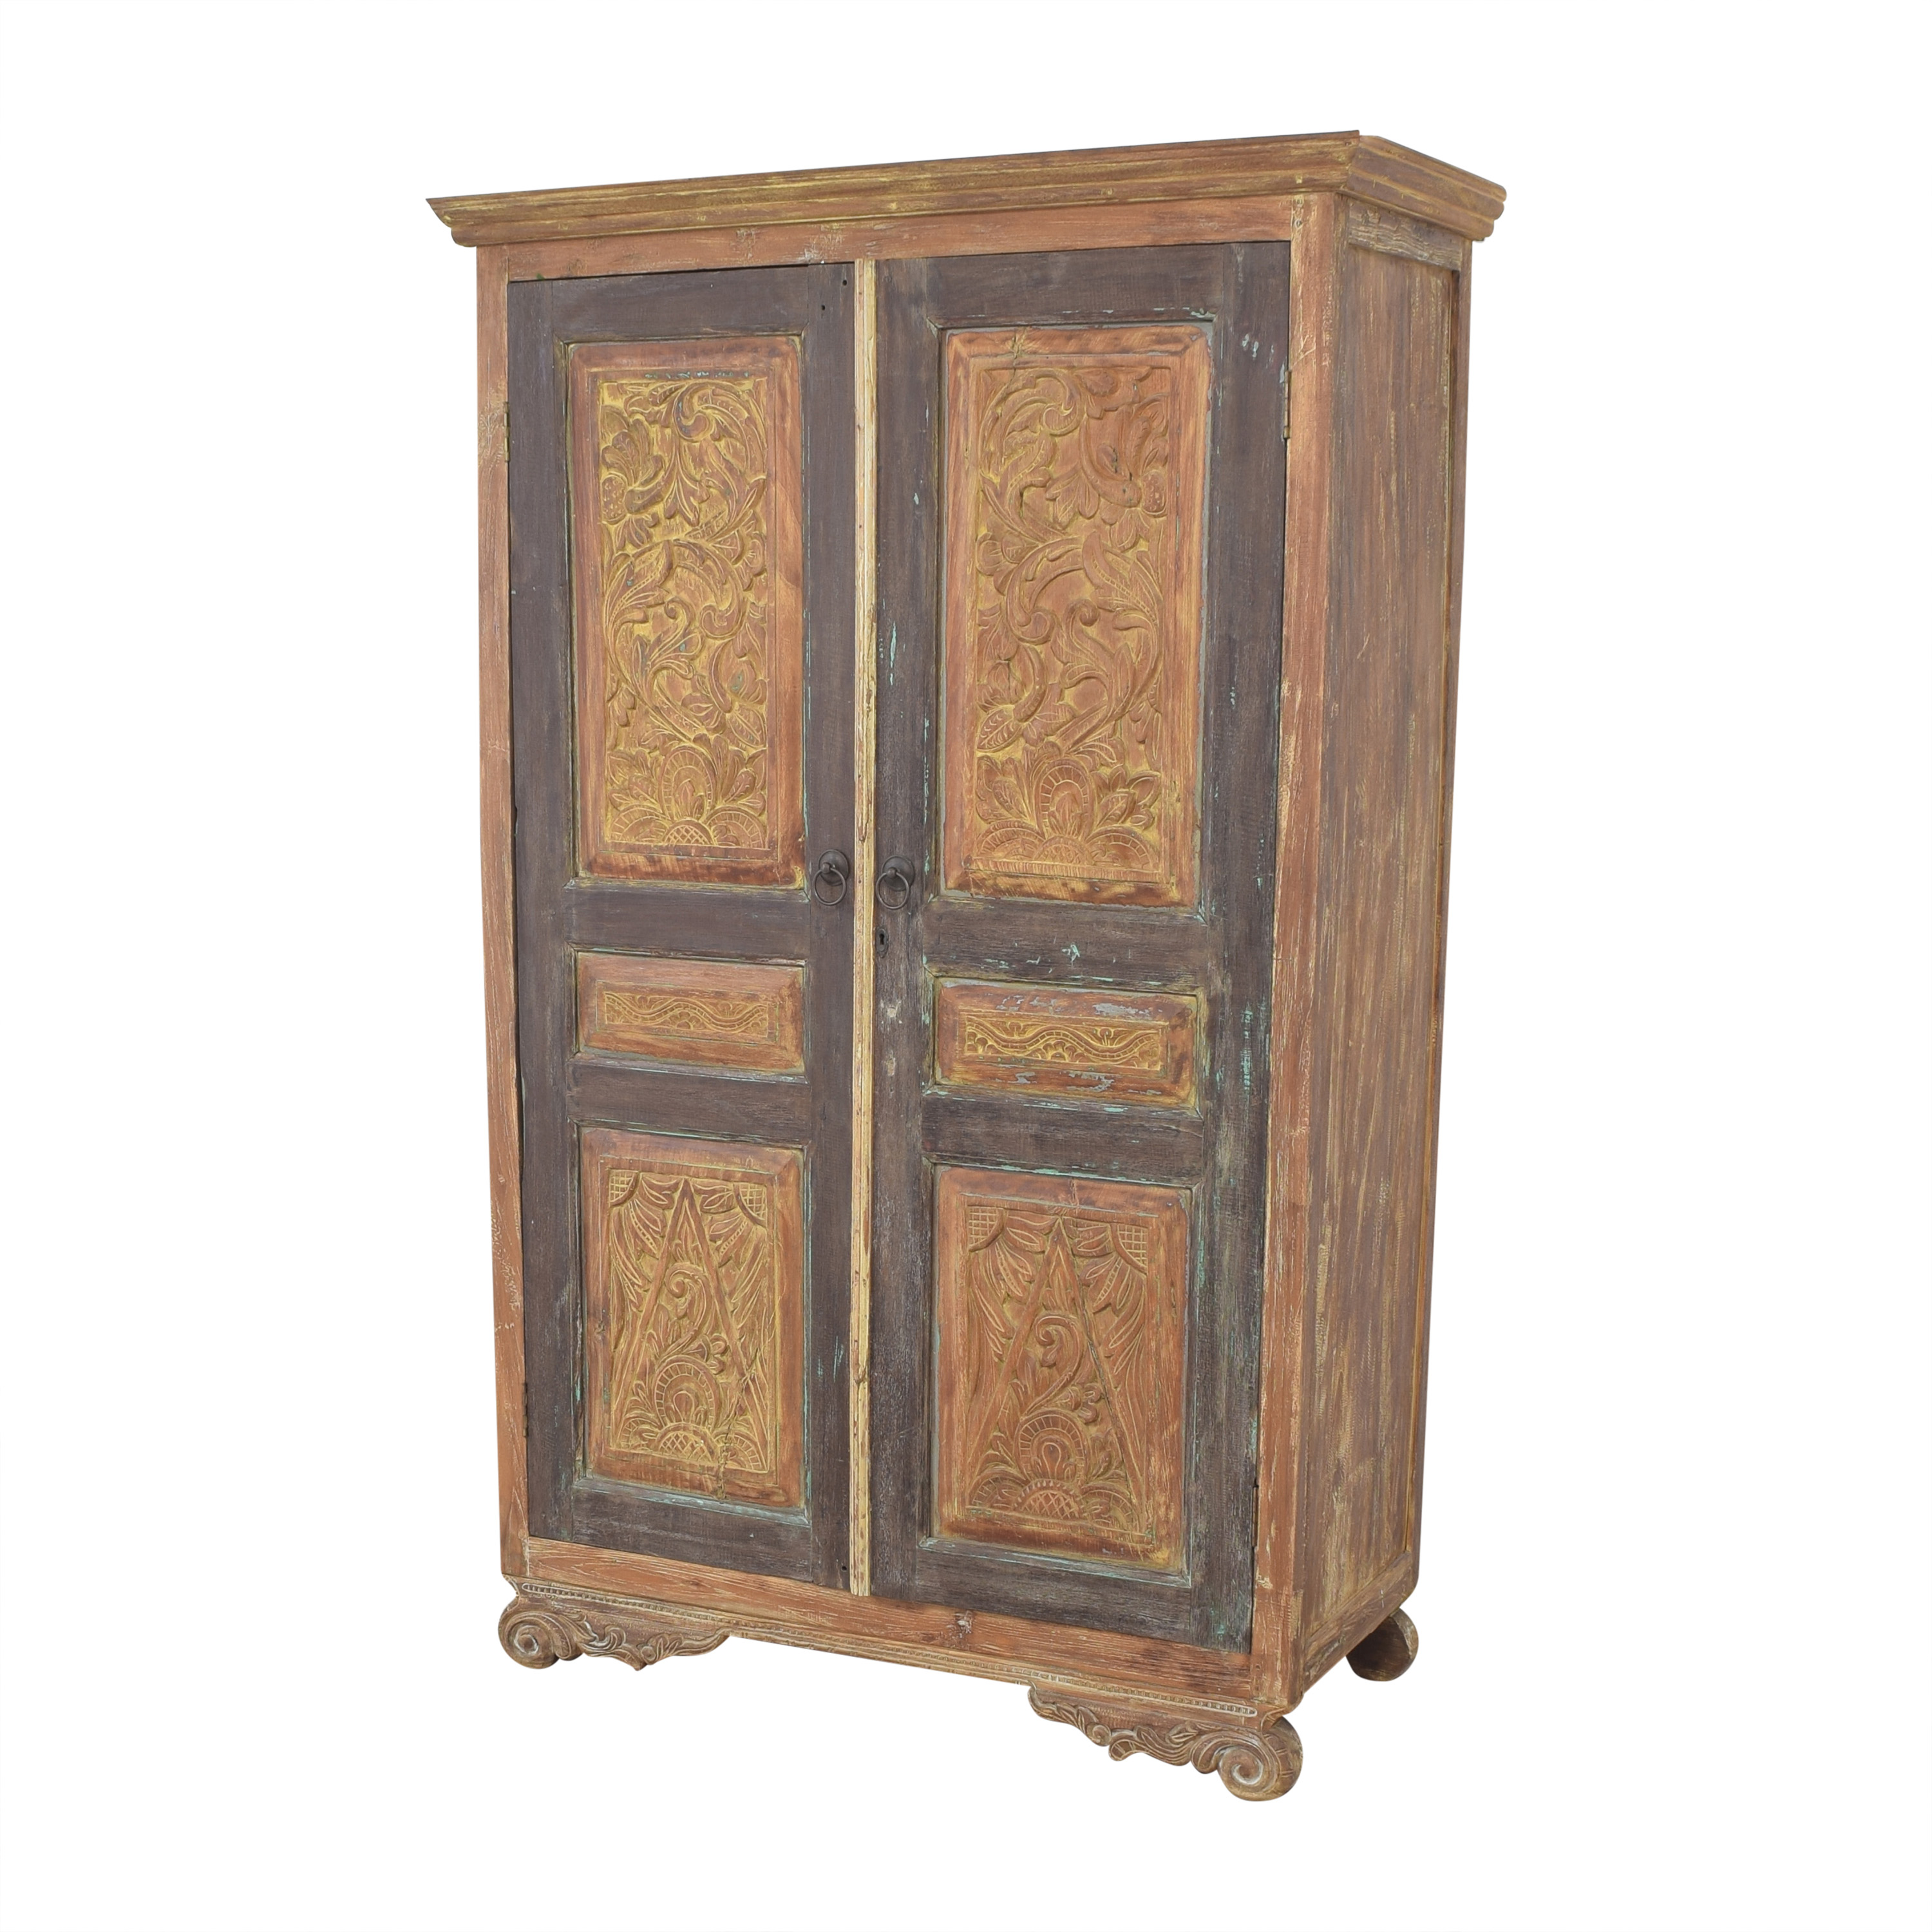 Rustic Vintage-Style Armoire used